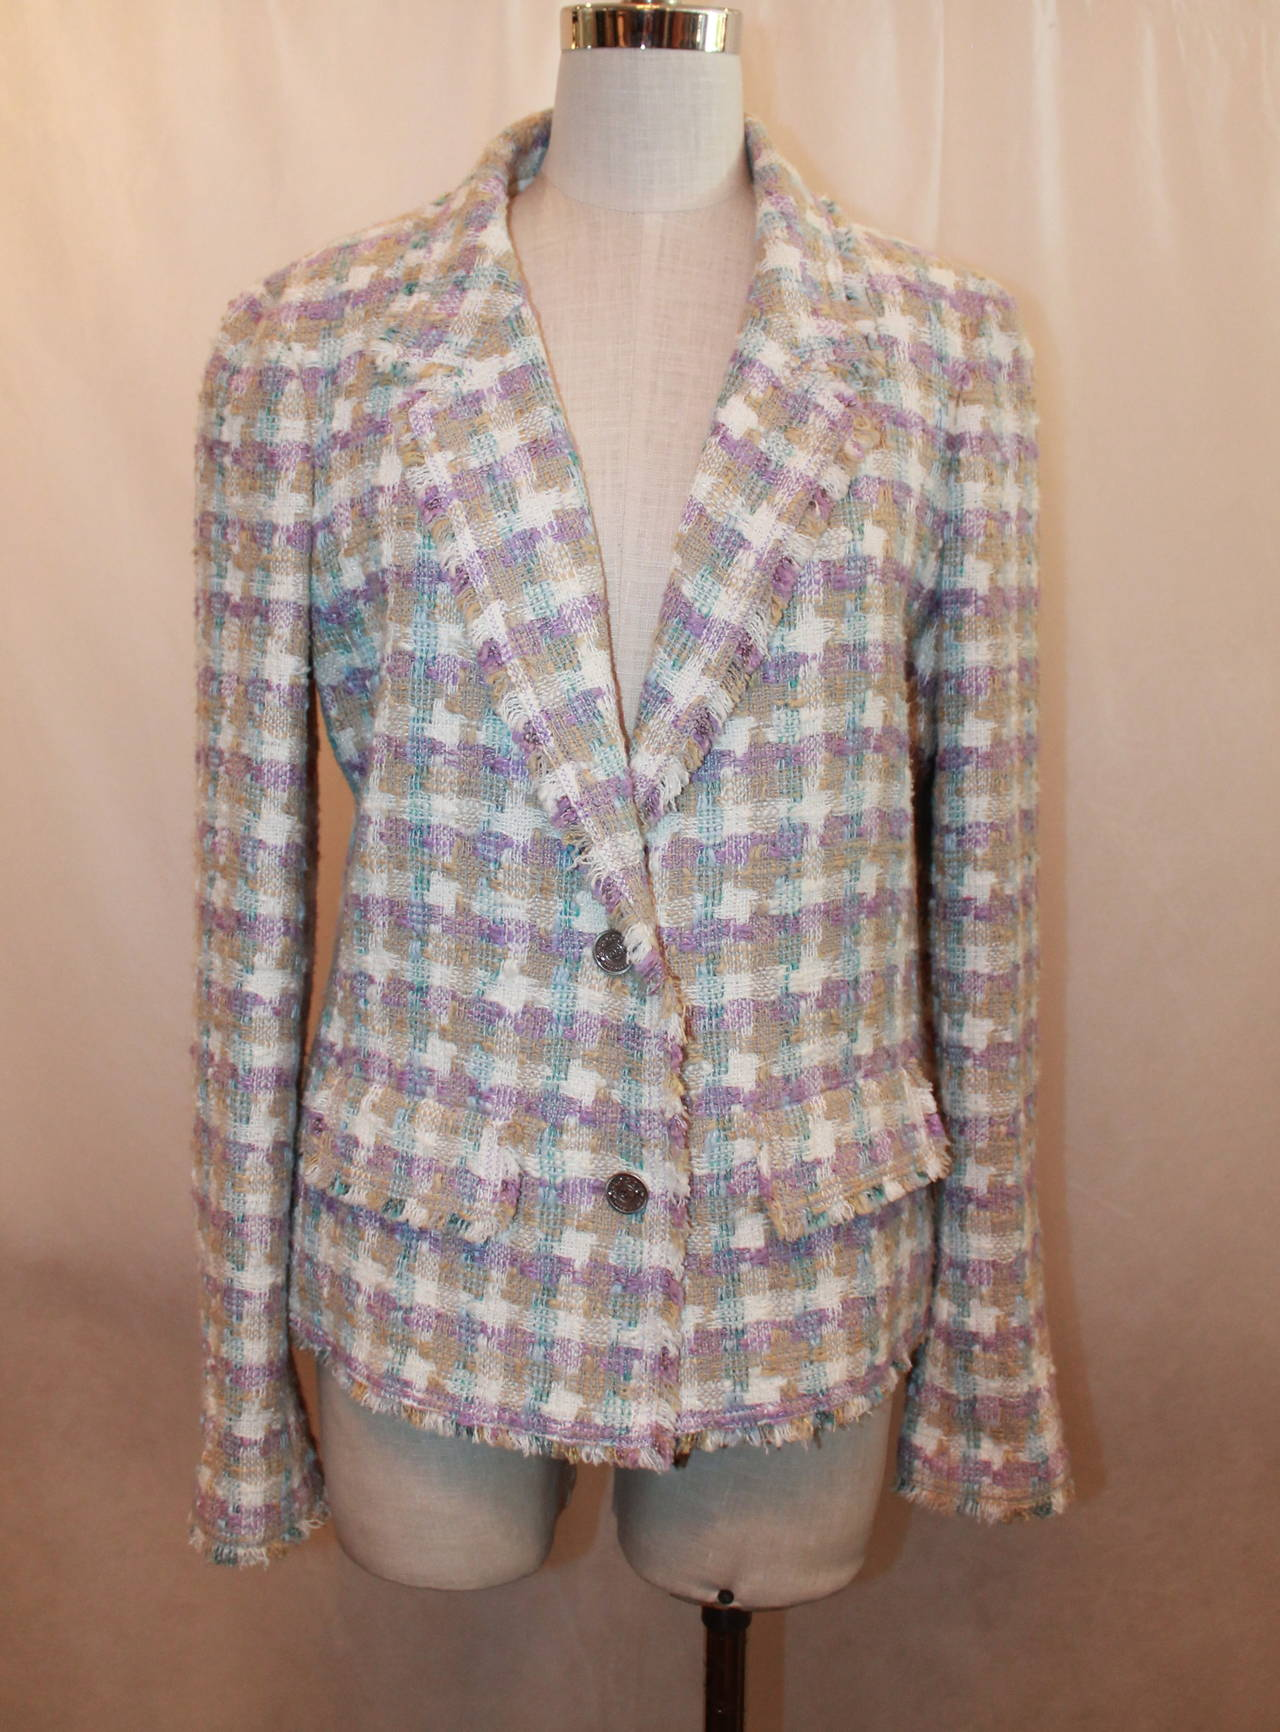 2005 Chanel Multi Color Pastel Tweed Jacket with Mademoiselle Buttons 2